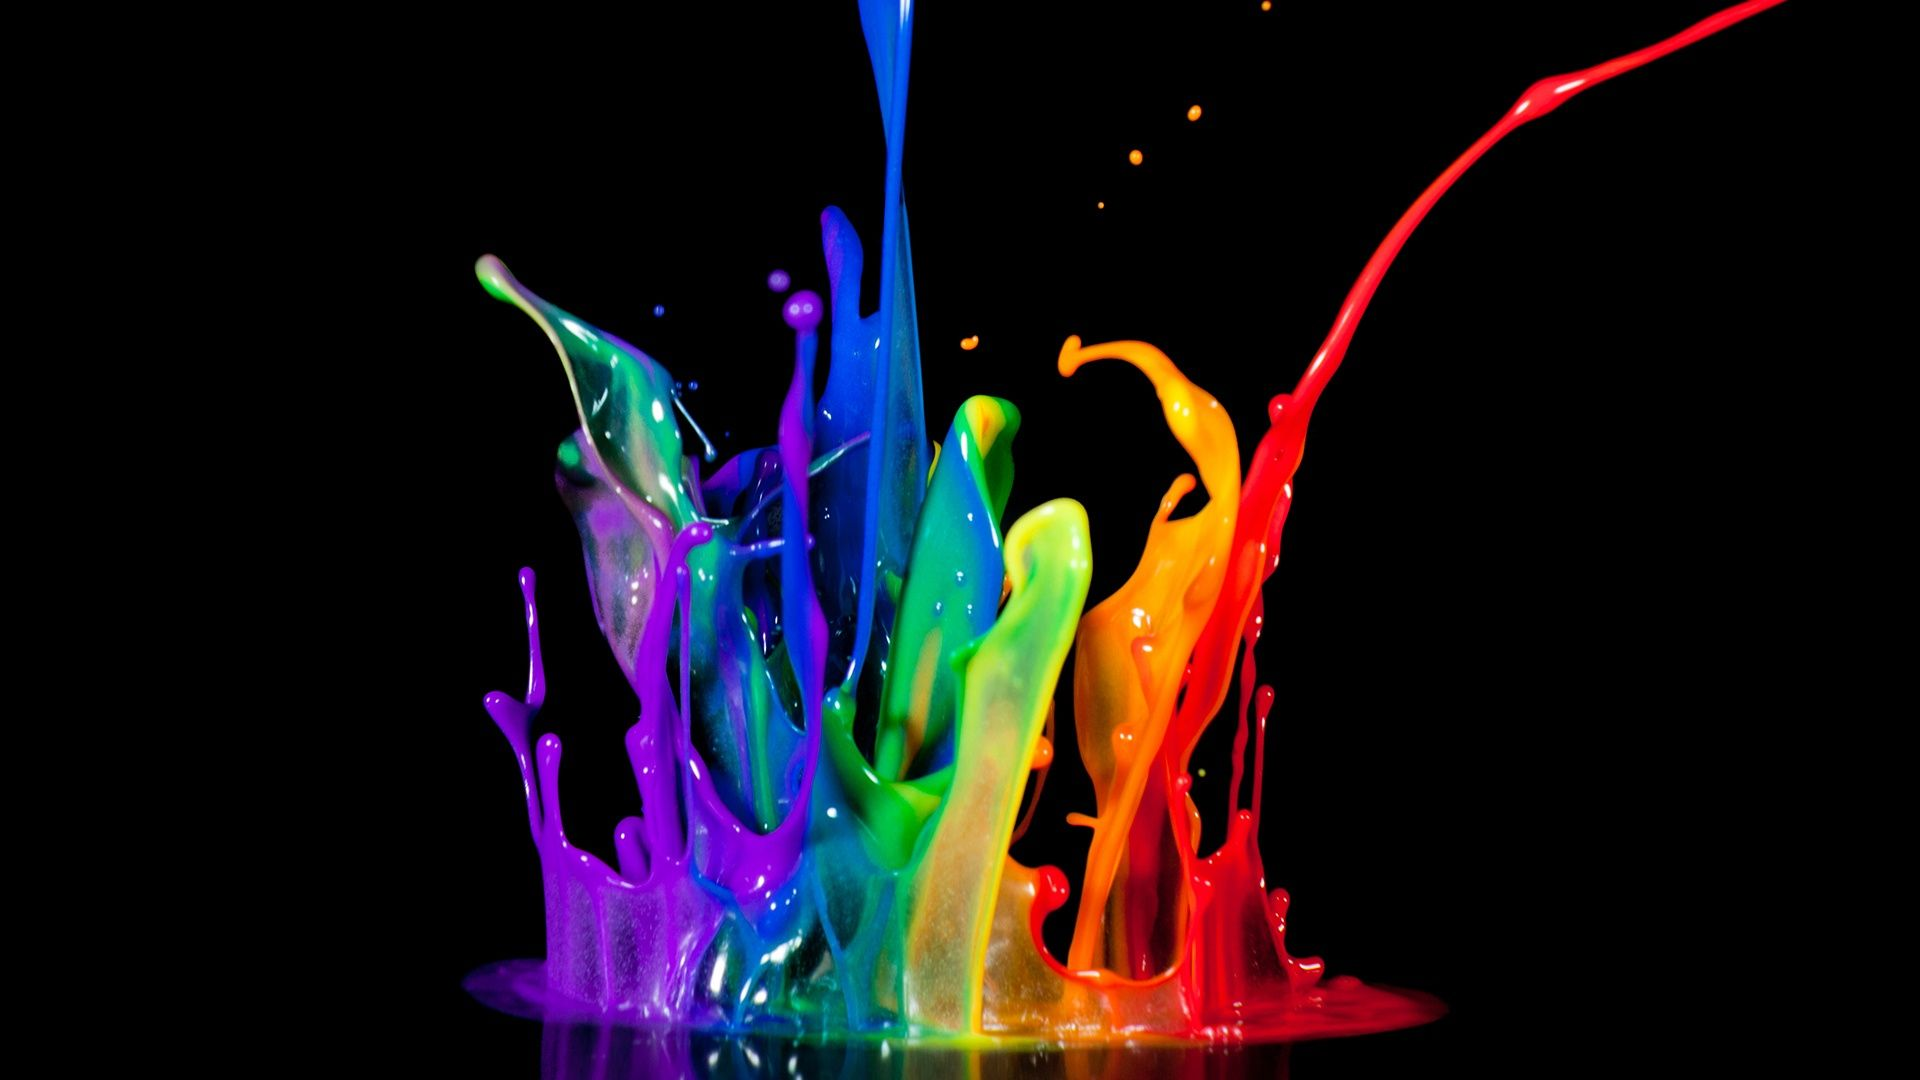 Abstract Colorful HD Wallpaper Colorful Wallpaper HD Free | Colorful in 2019 | Colorful ...